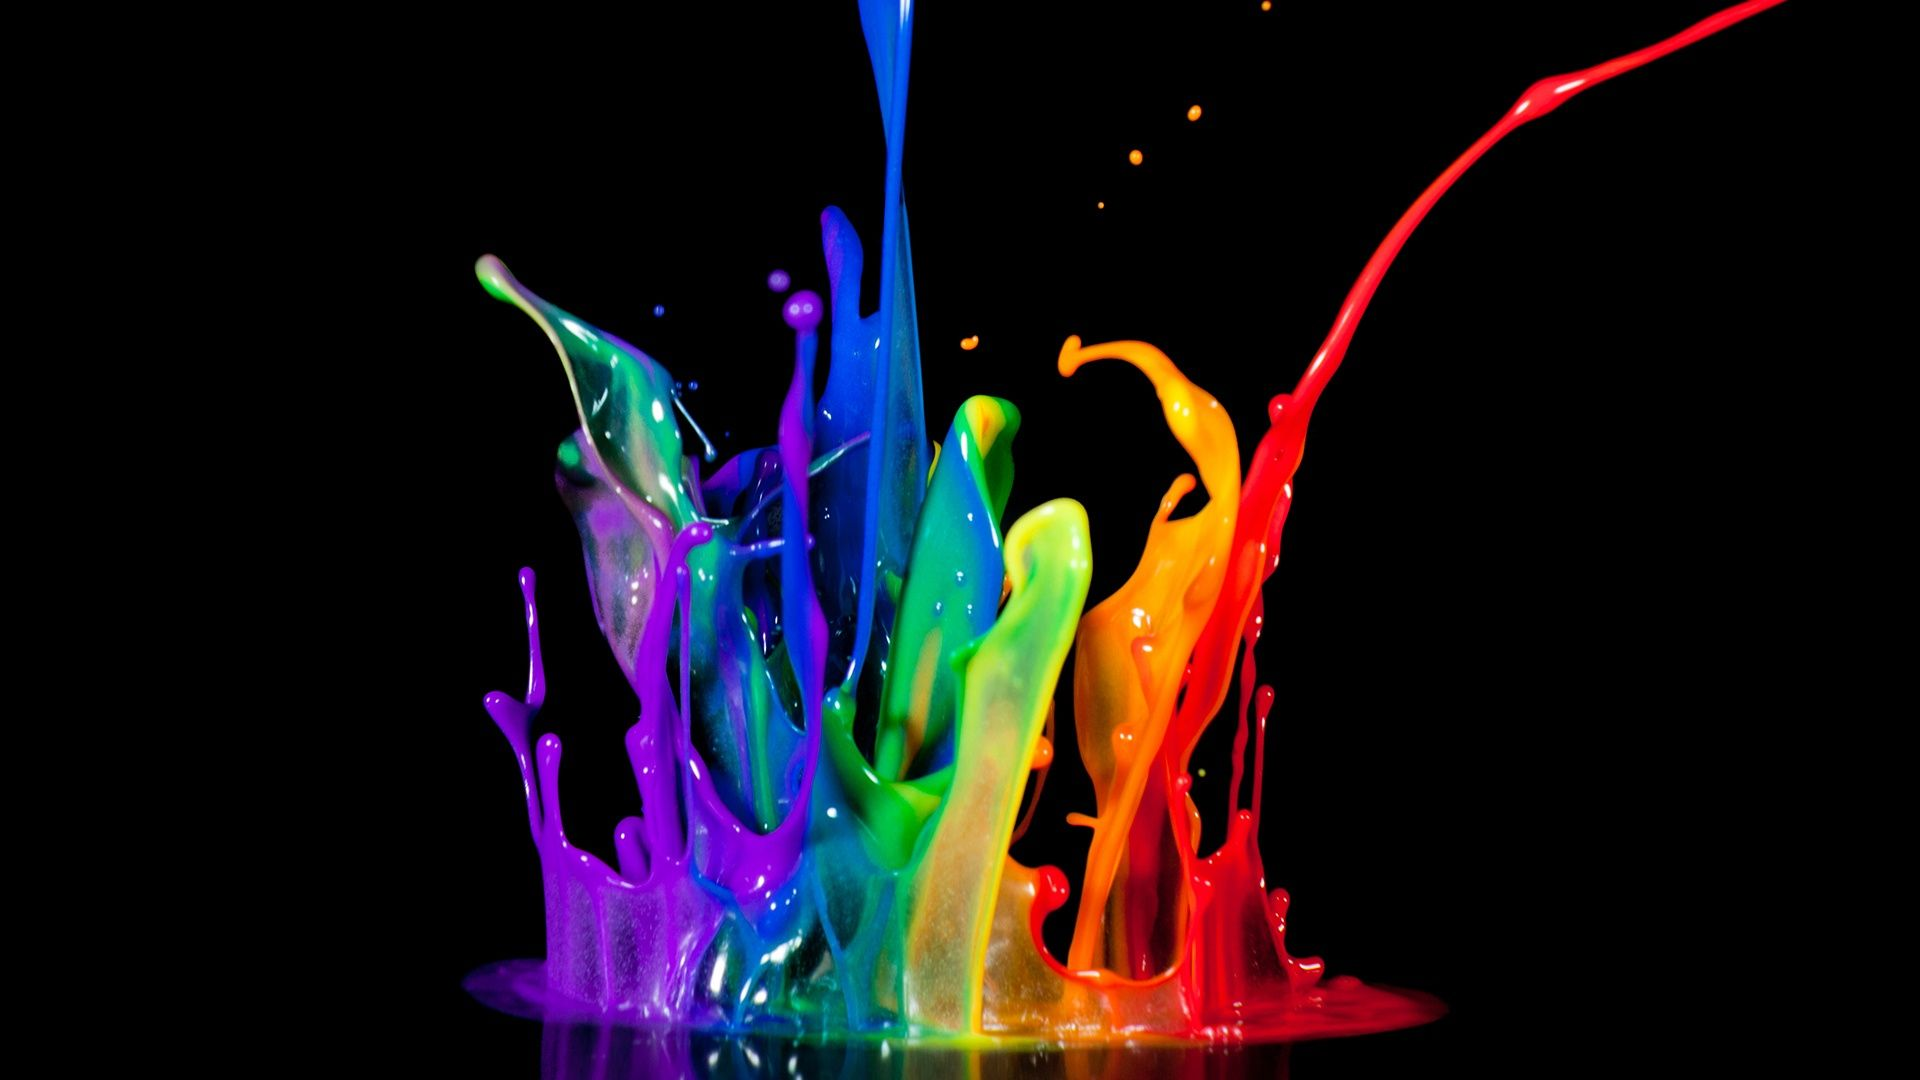 Abstract Colorful HD Wallpaper Colorful Wallpaper HD Free | Colorful in 2019 | Colorful ...